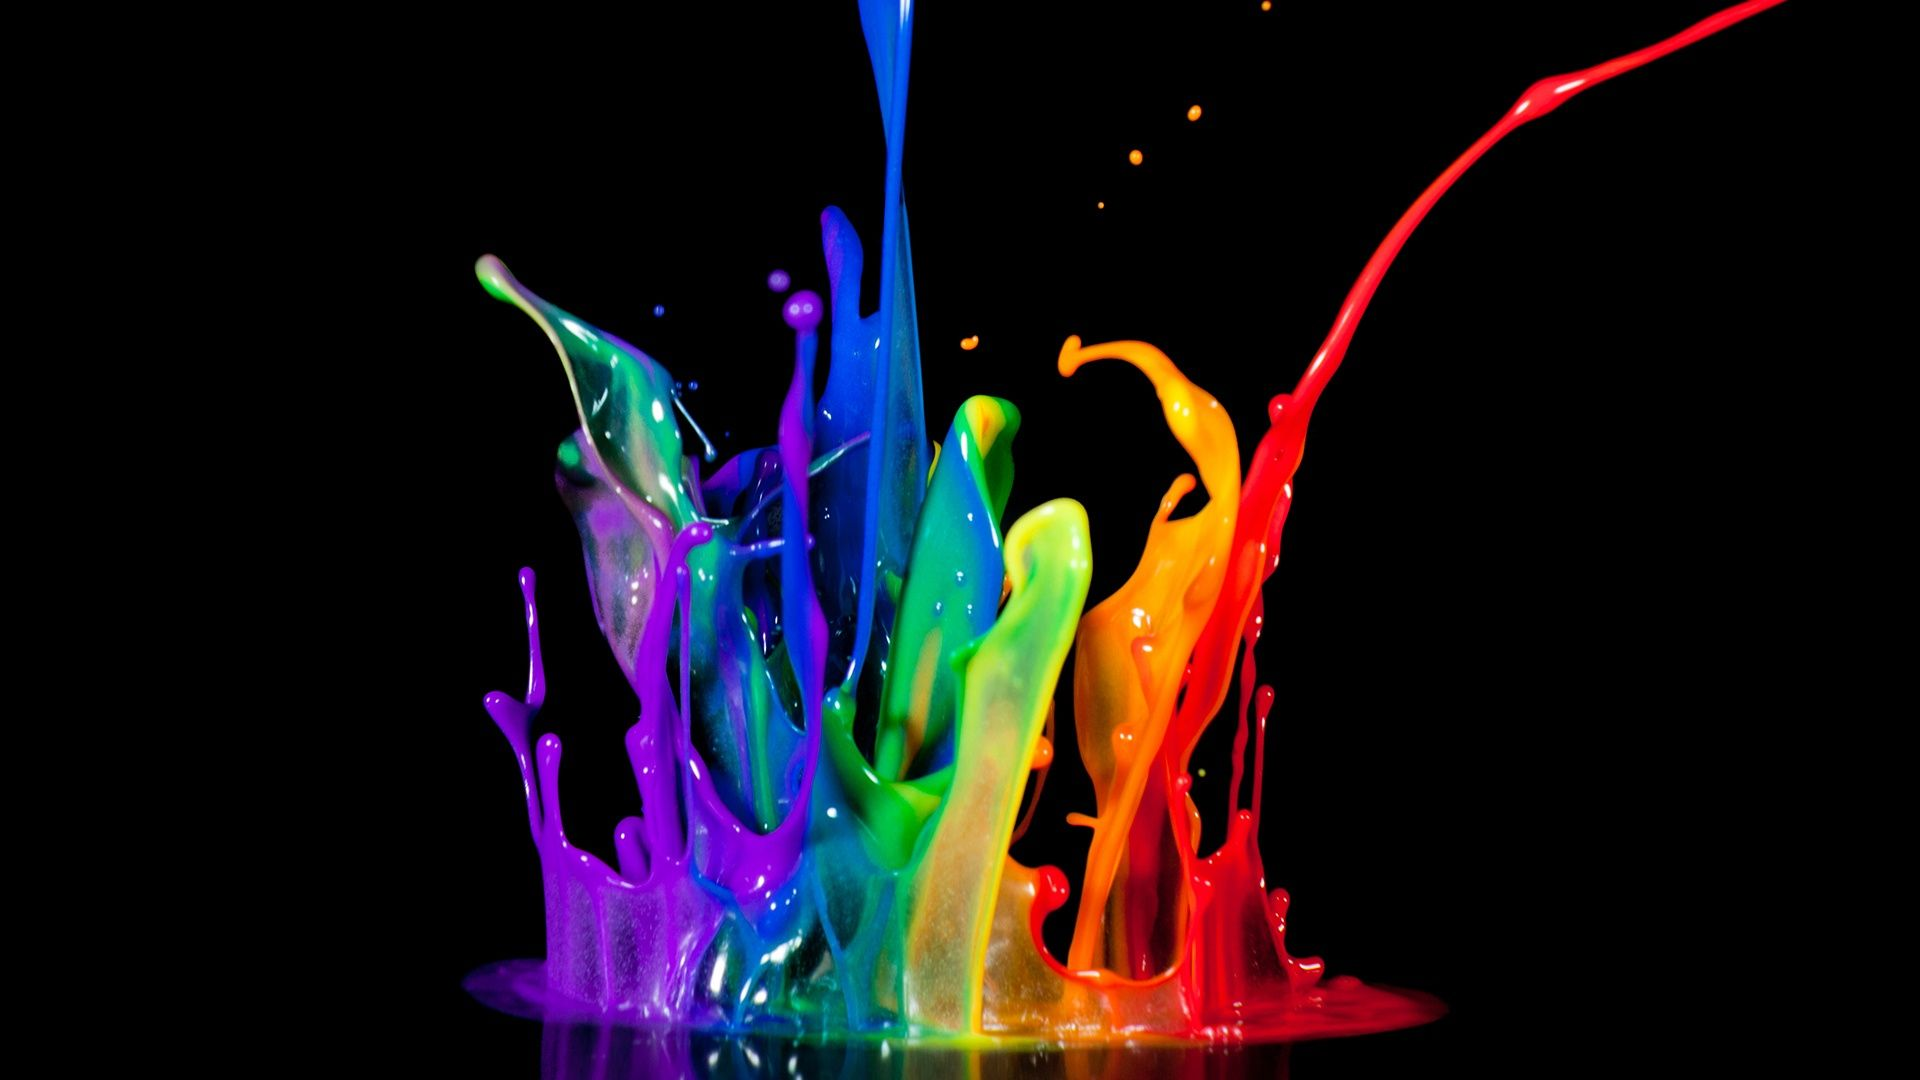 Abstract Colorful HD Wallpaper Colorful Wallpaper HD Free | Colorful in 2019 | Colorful ...